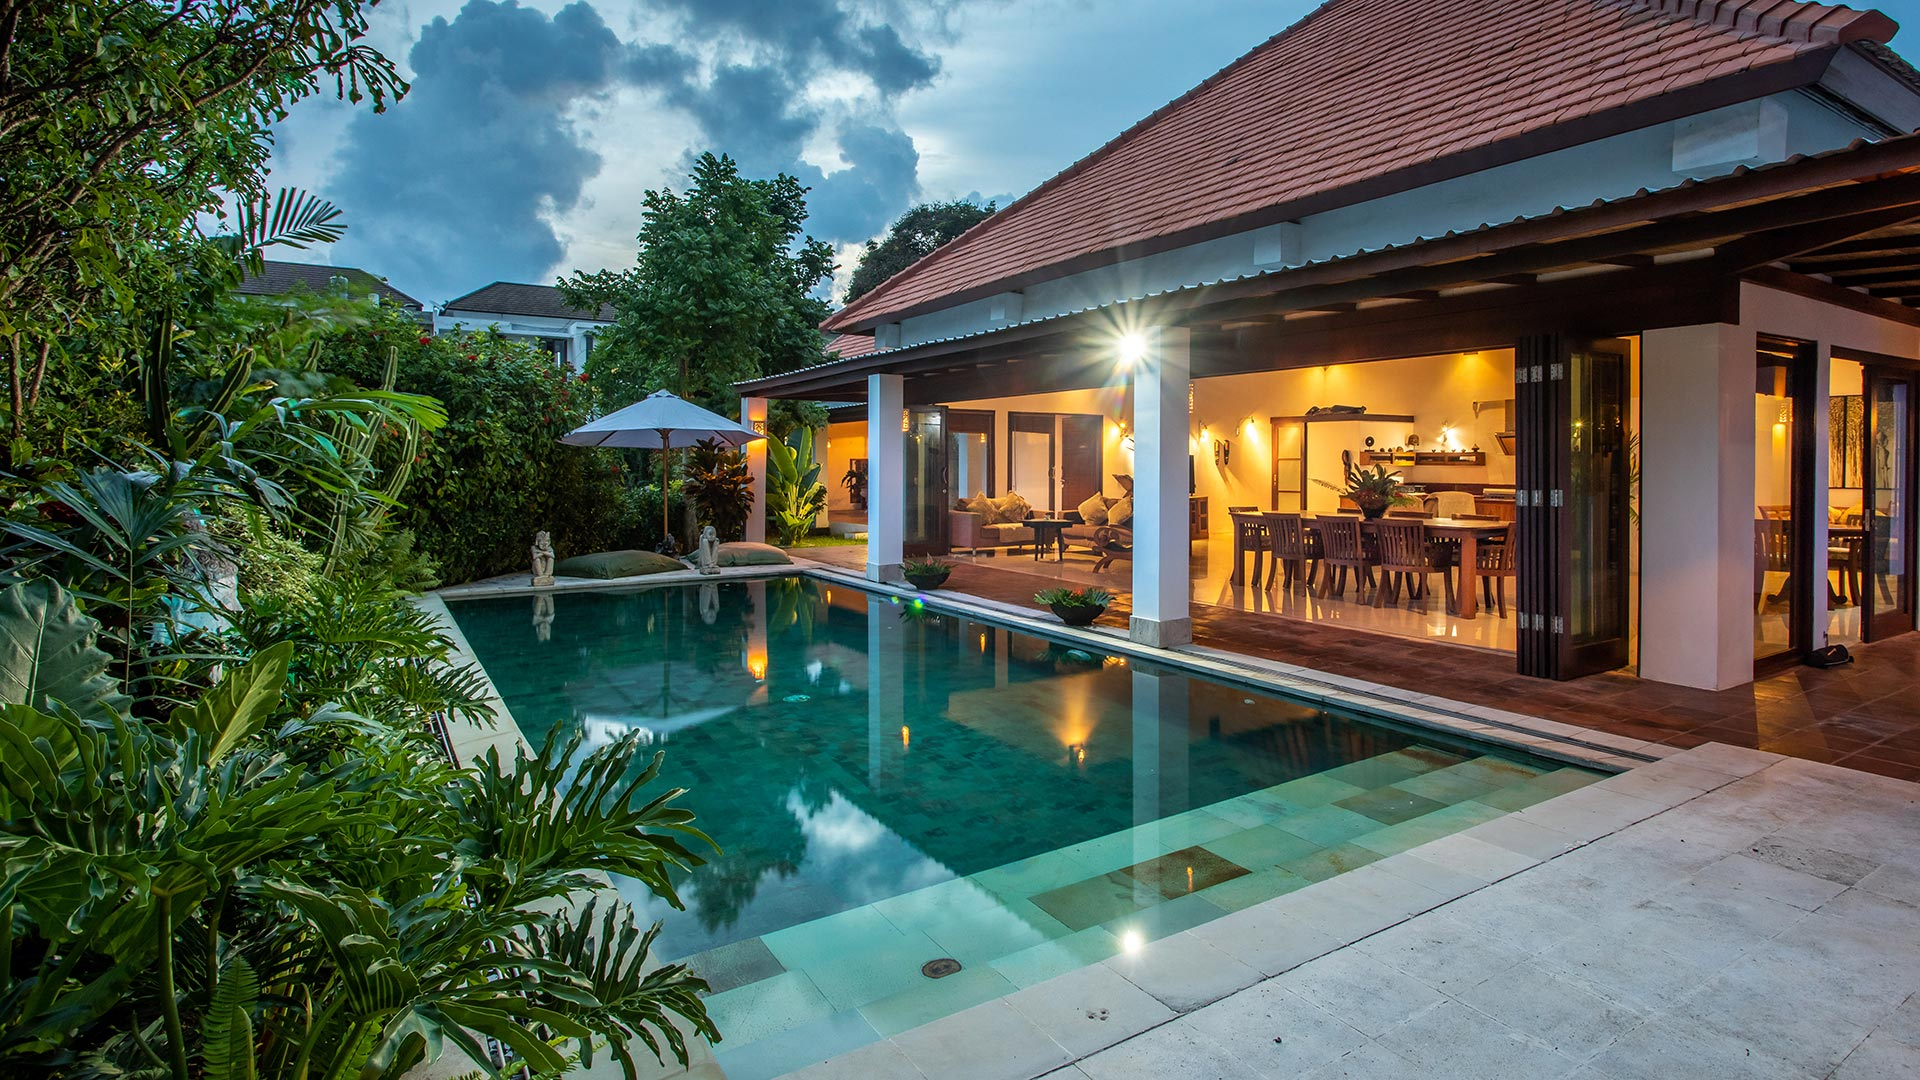 Villa Terisan is a private 4 bedroom villas located in Kerobokan, just 10 minutes drive from Seminyak. The villa has a huge area...